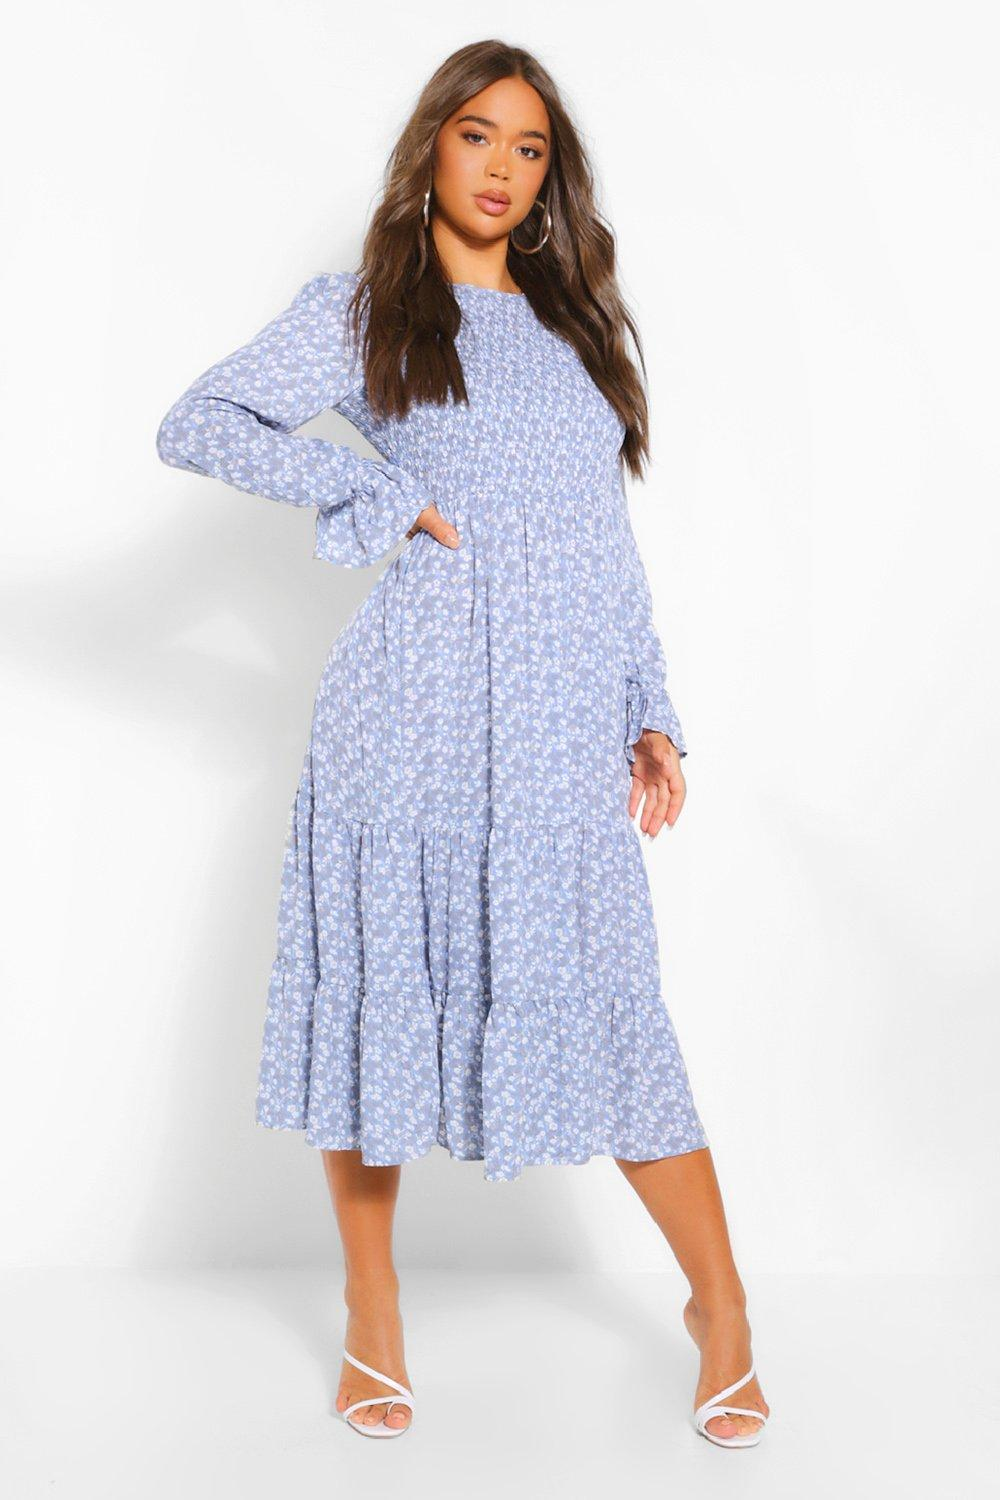 Cottagecore Dresses Aesthetic, Granny, Vintage Womens Floral Print Long Sleeve Tiered Midaxi Smock Dress - Blue - 14 $22.00 AT vintagedancer.com